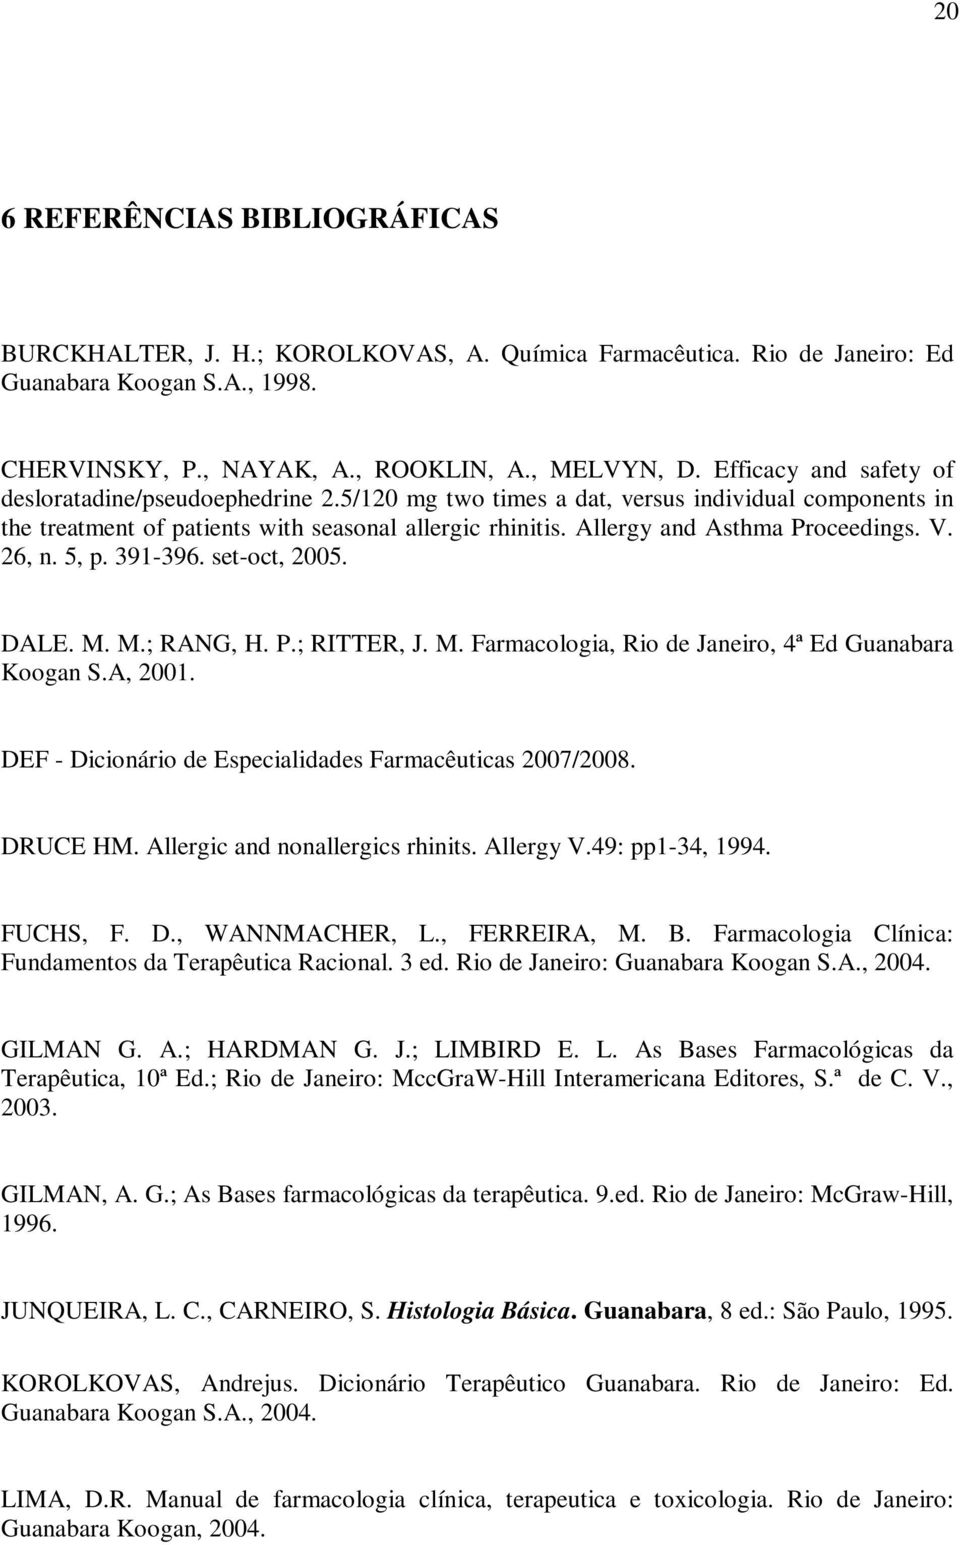 Allergy and Asthma Proceedings. V. 26, n. 5, p. 391-396. set-oct, 2005. DALE. M. M.; RANG, H. P.; RITTER, J. M. Farmacologia, Rio de Janeiro, 4ª Ed Guanabara Koogan S.A, 2001.